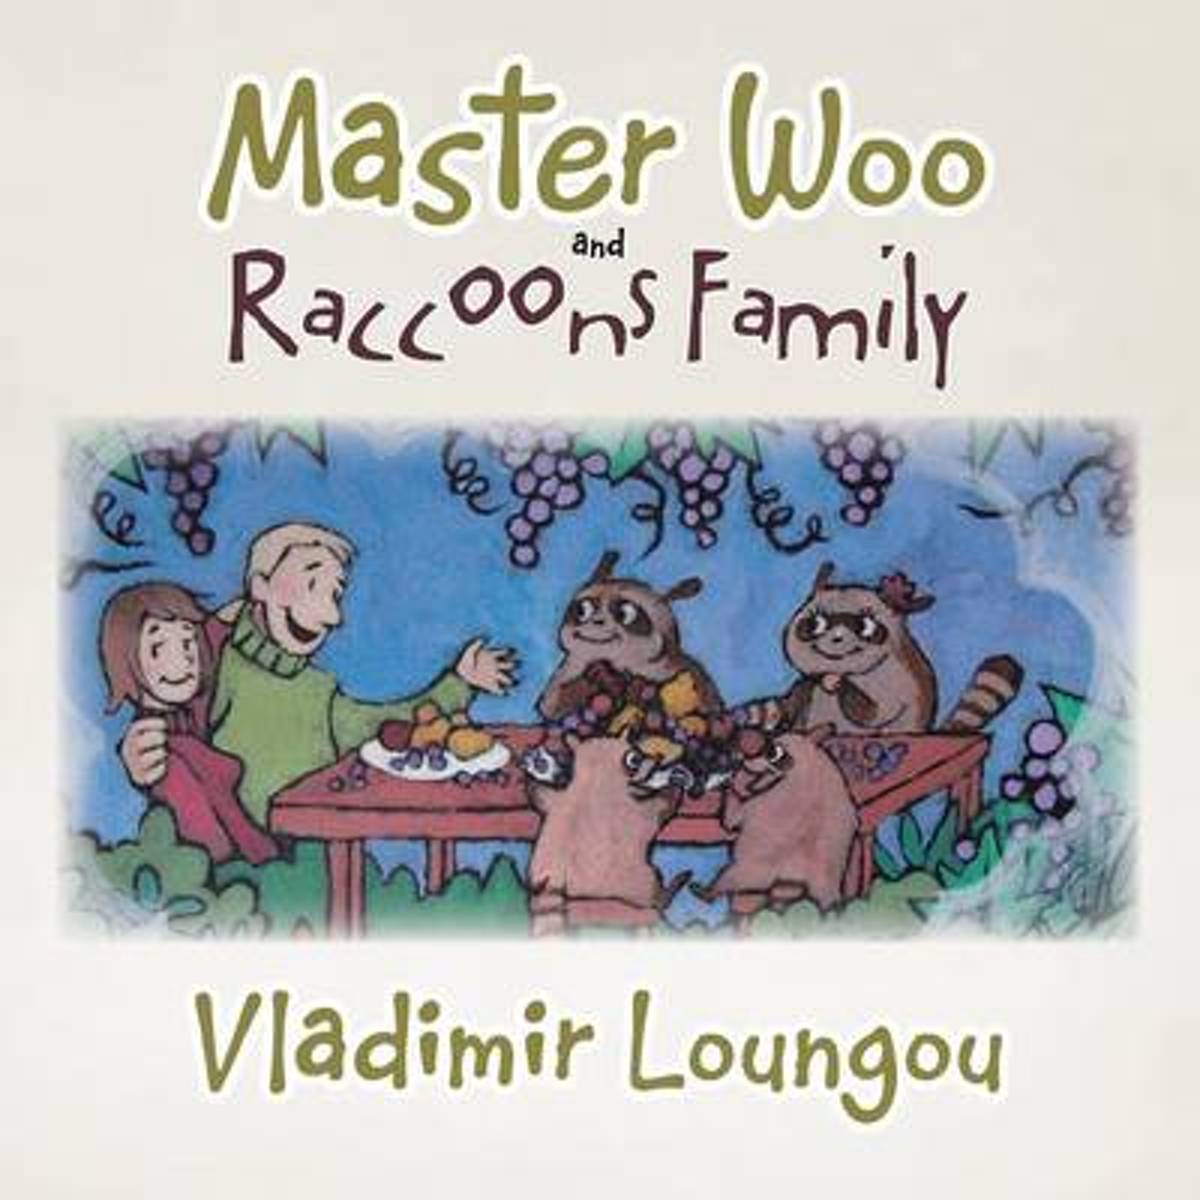 Master Woo and Raccoons Family